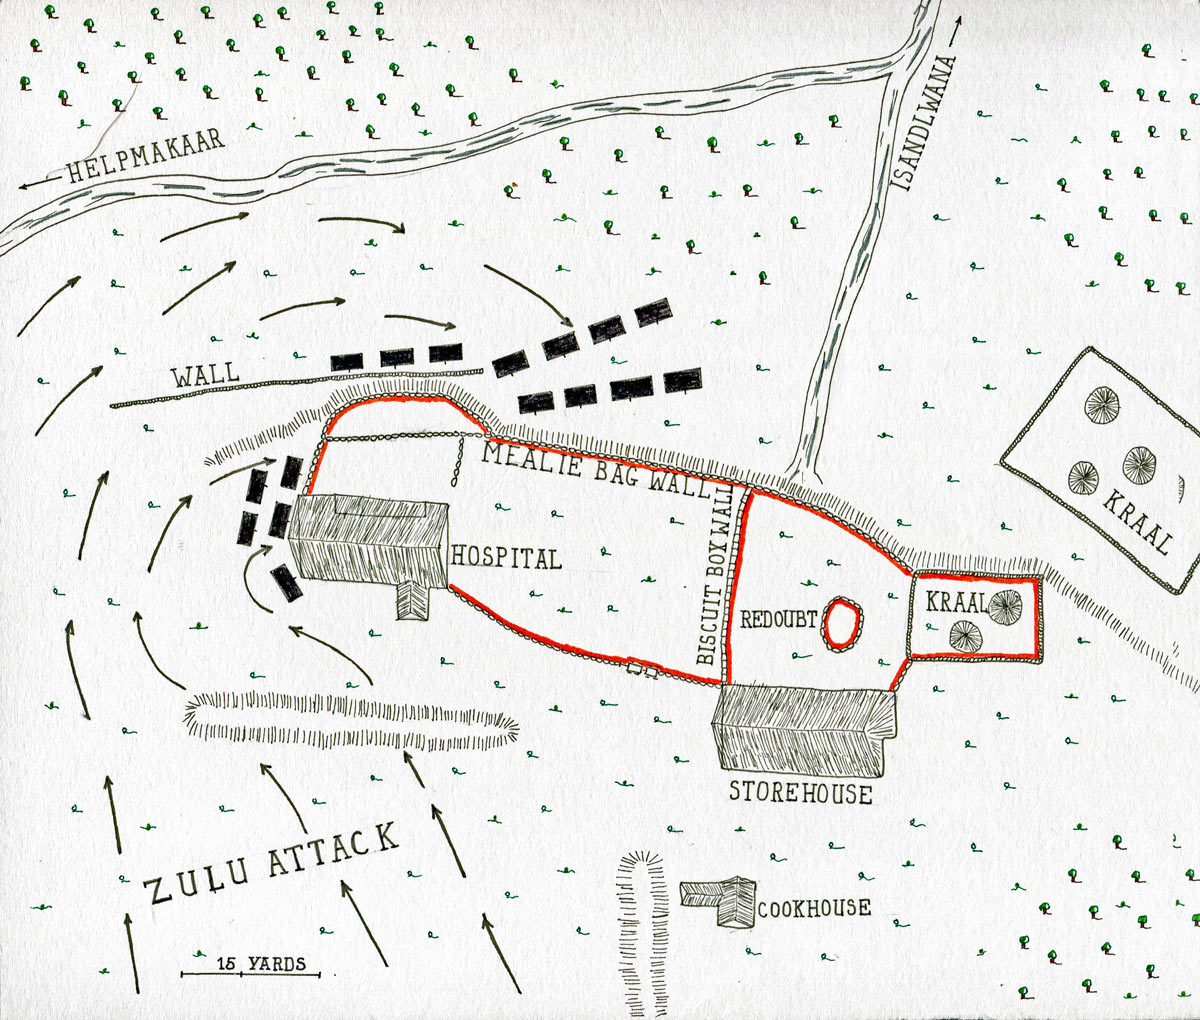 Map of the Battle of Rorke's Drift on 22nd January 1879 in the Zulu War: map by John Fawkes